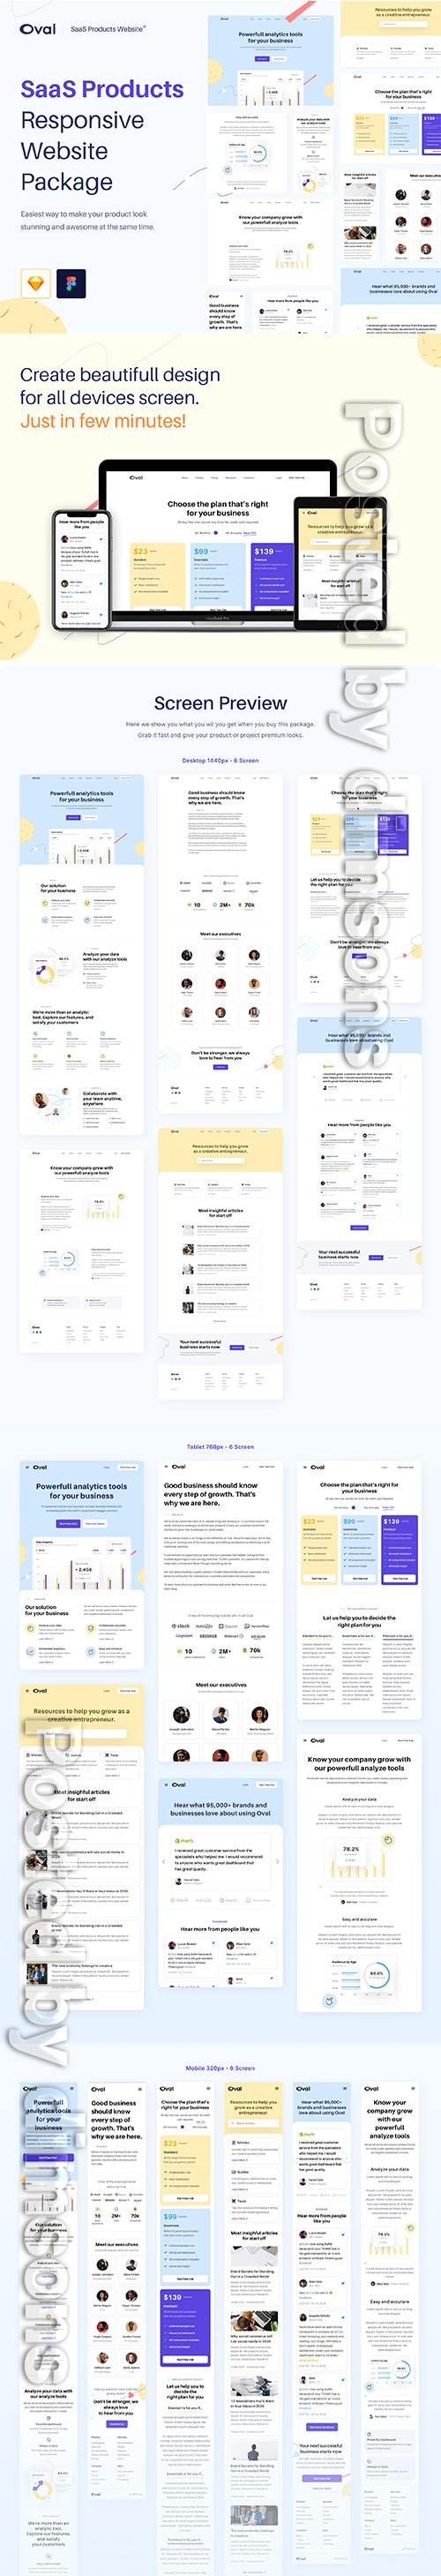 Oval SaaS Products Website Design